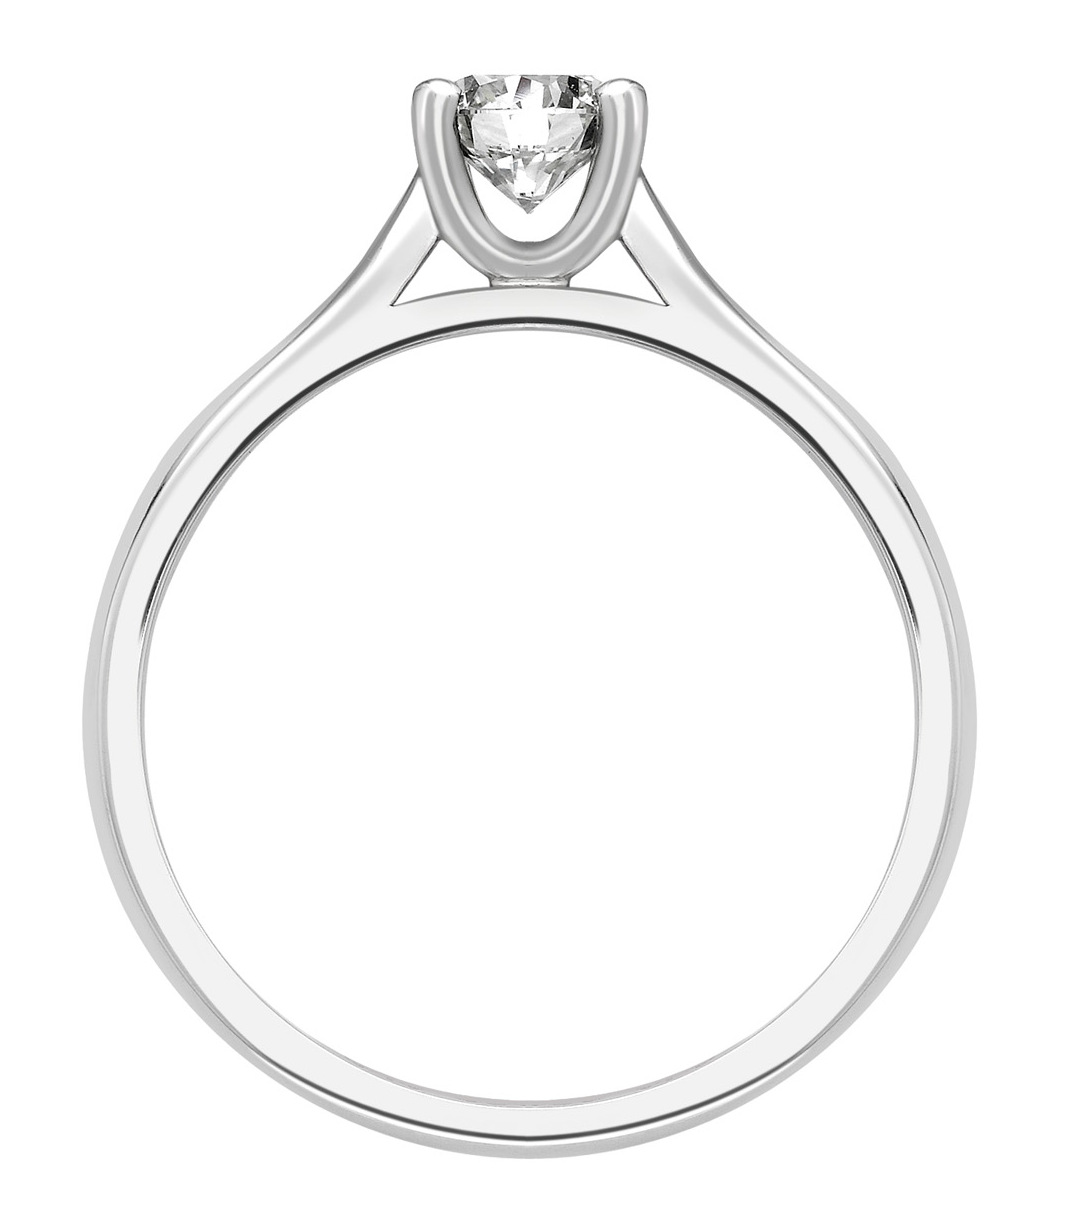 Round Four Claw White Gold Engagement Ring GRC680  Image 2